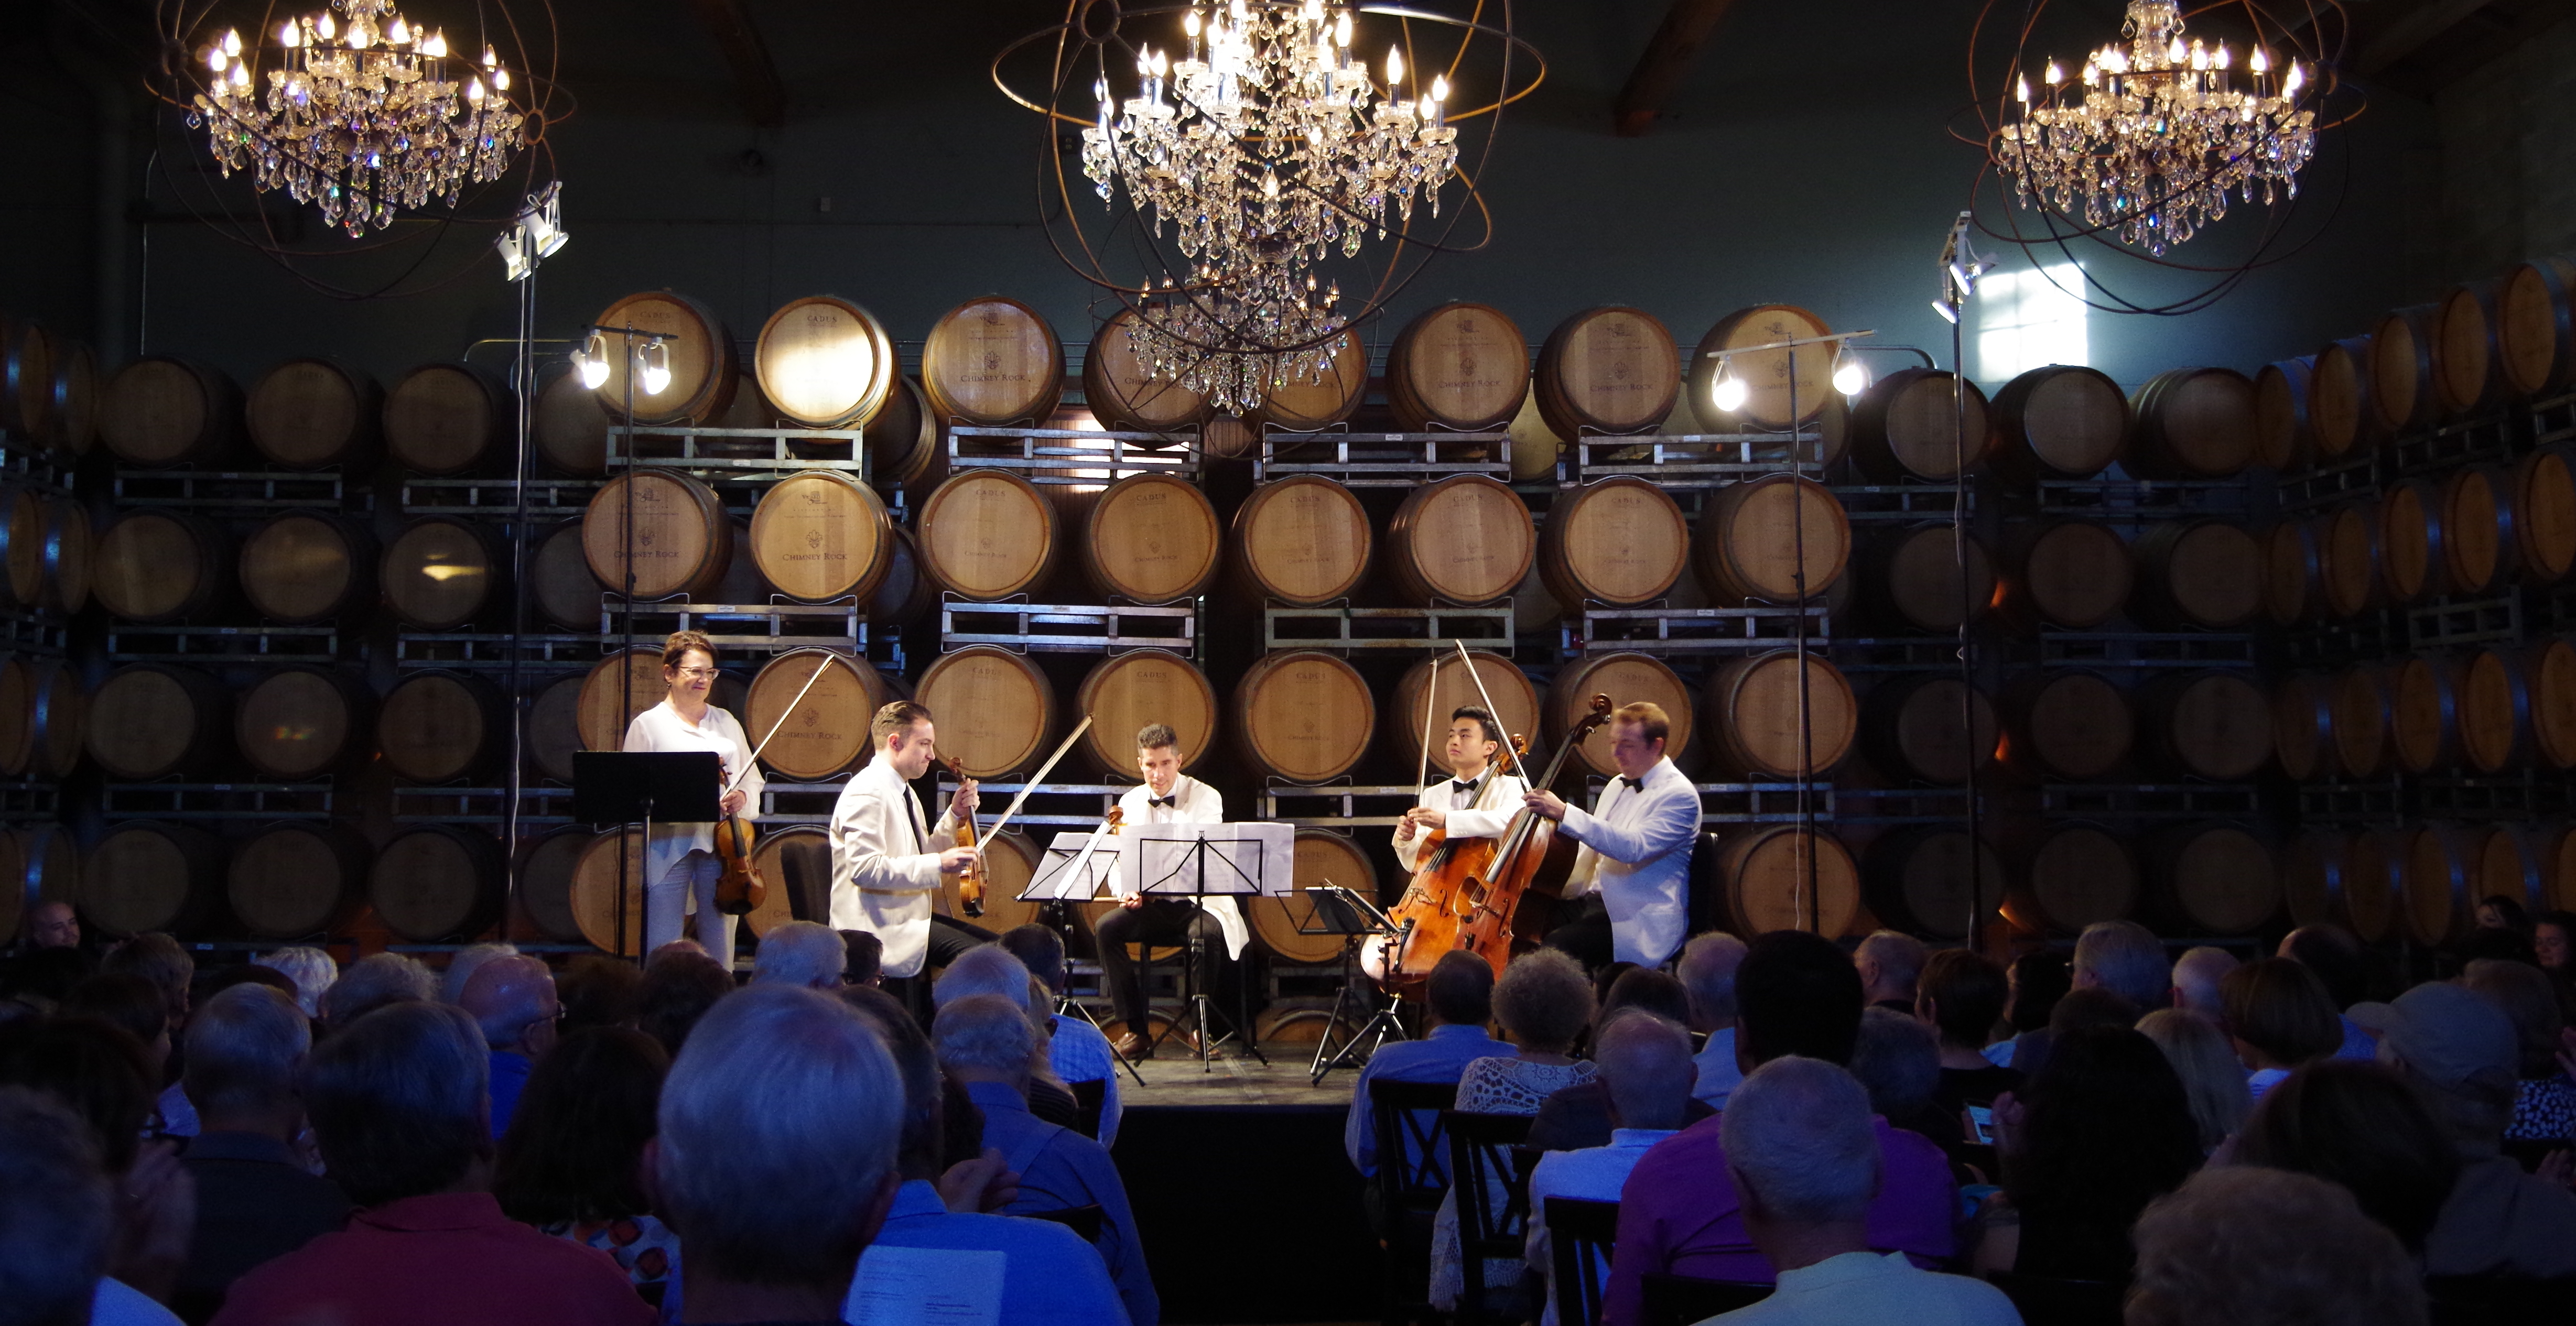 2019 Schedule - Music in the Vineyards - Chamber Music